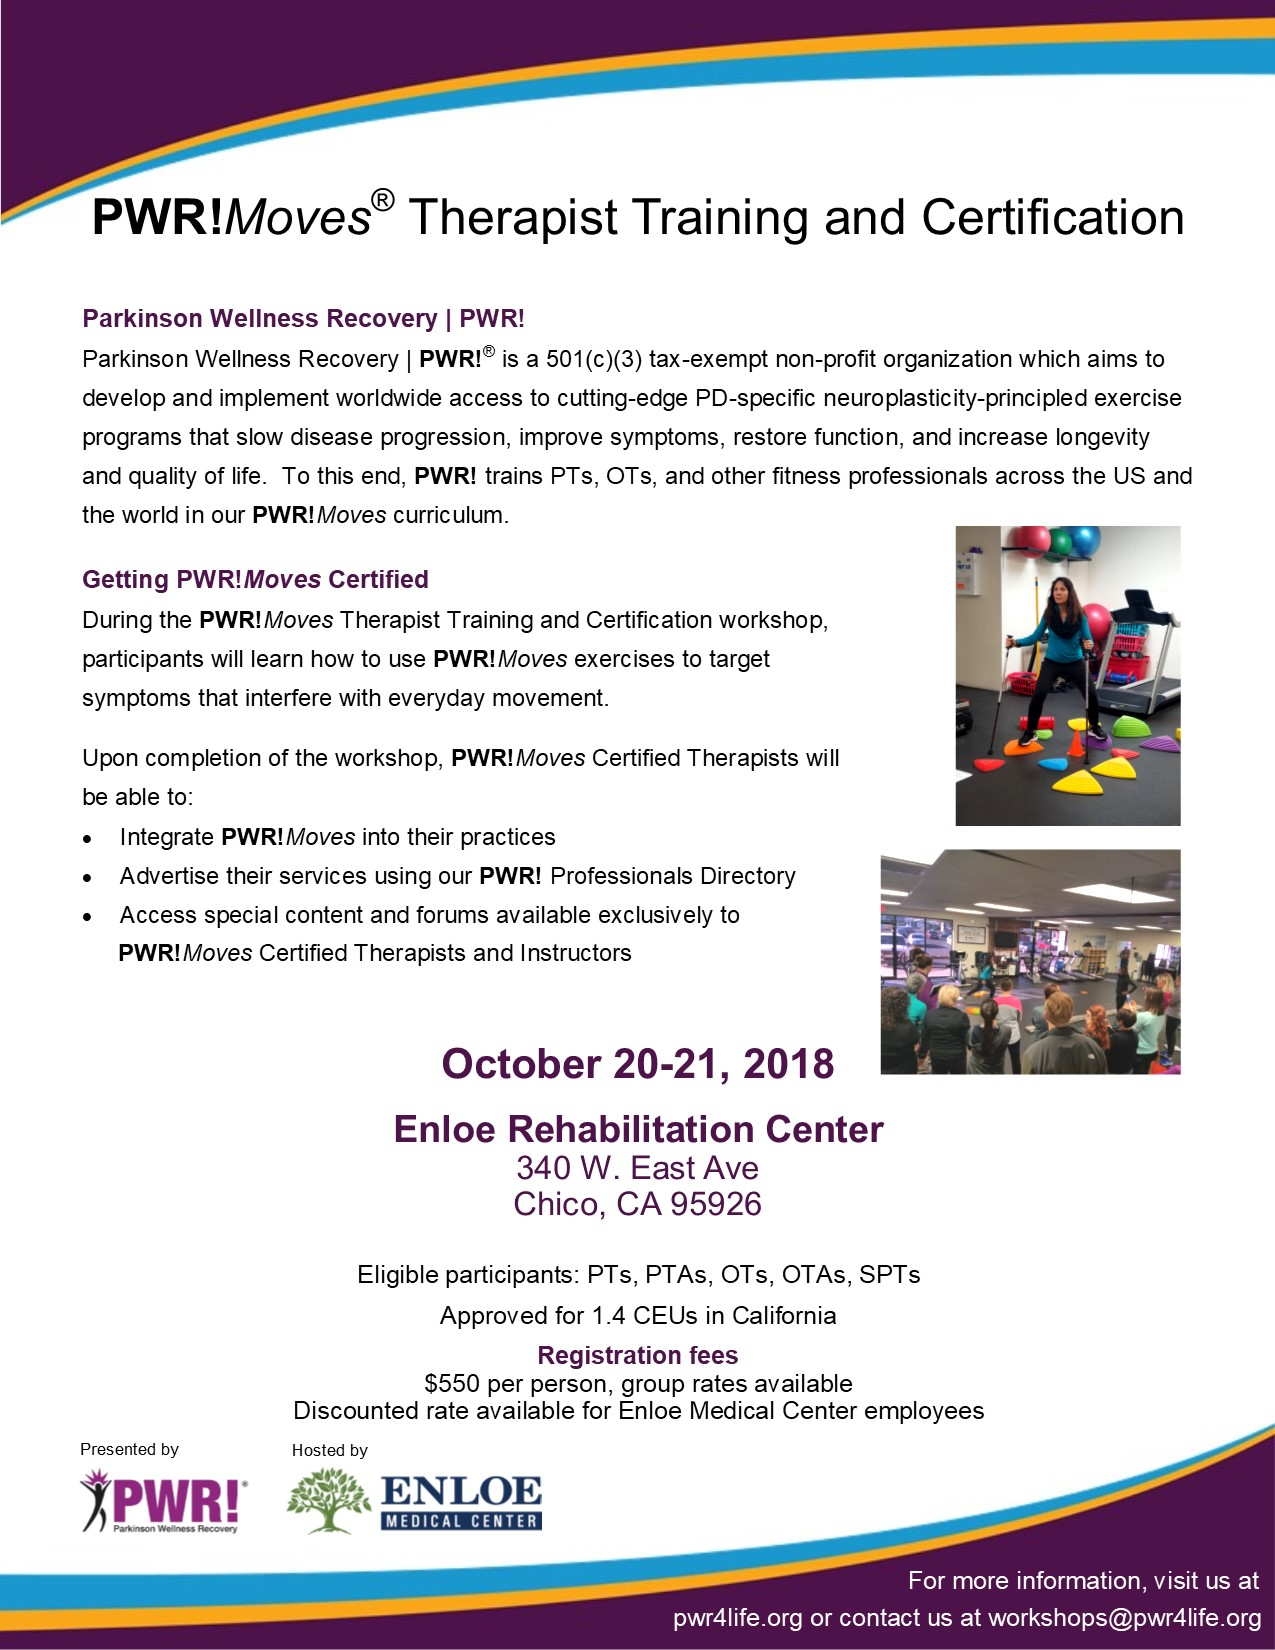 Upcoming Pwr Therapist Workshops Parkinson Wellness Recovery Pwr